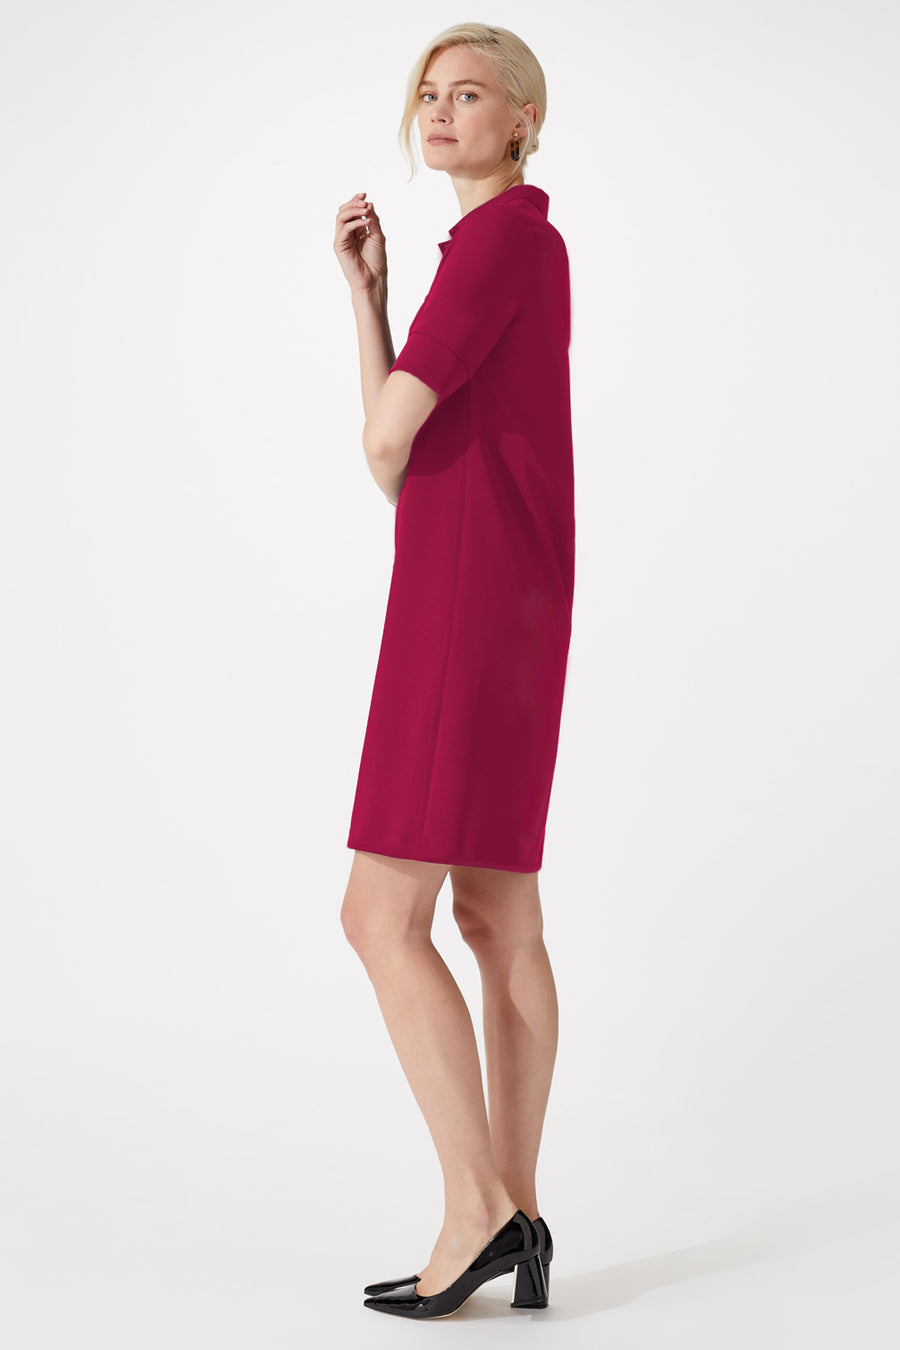 Hurlingham Rosehip Dress